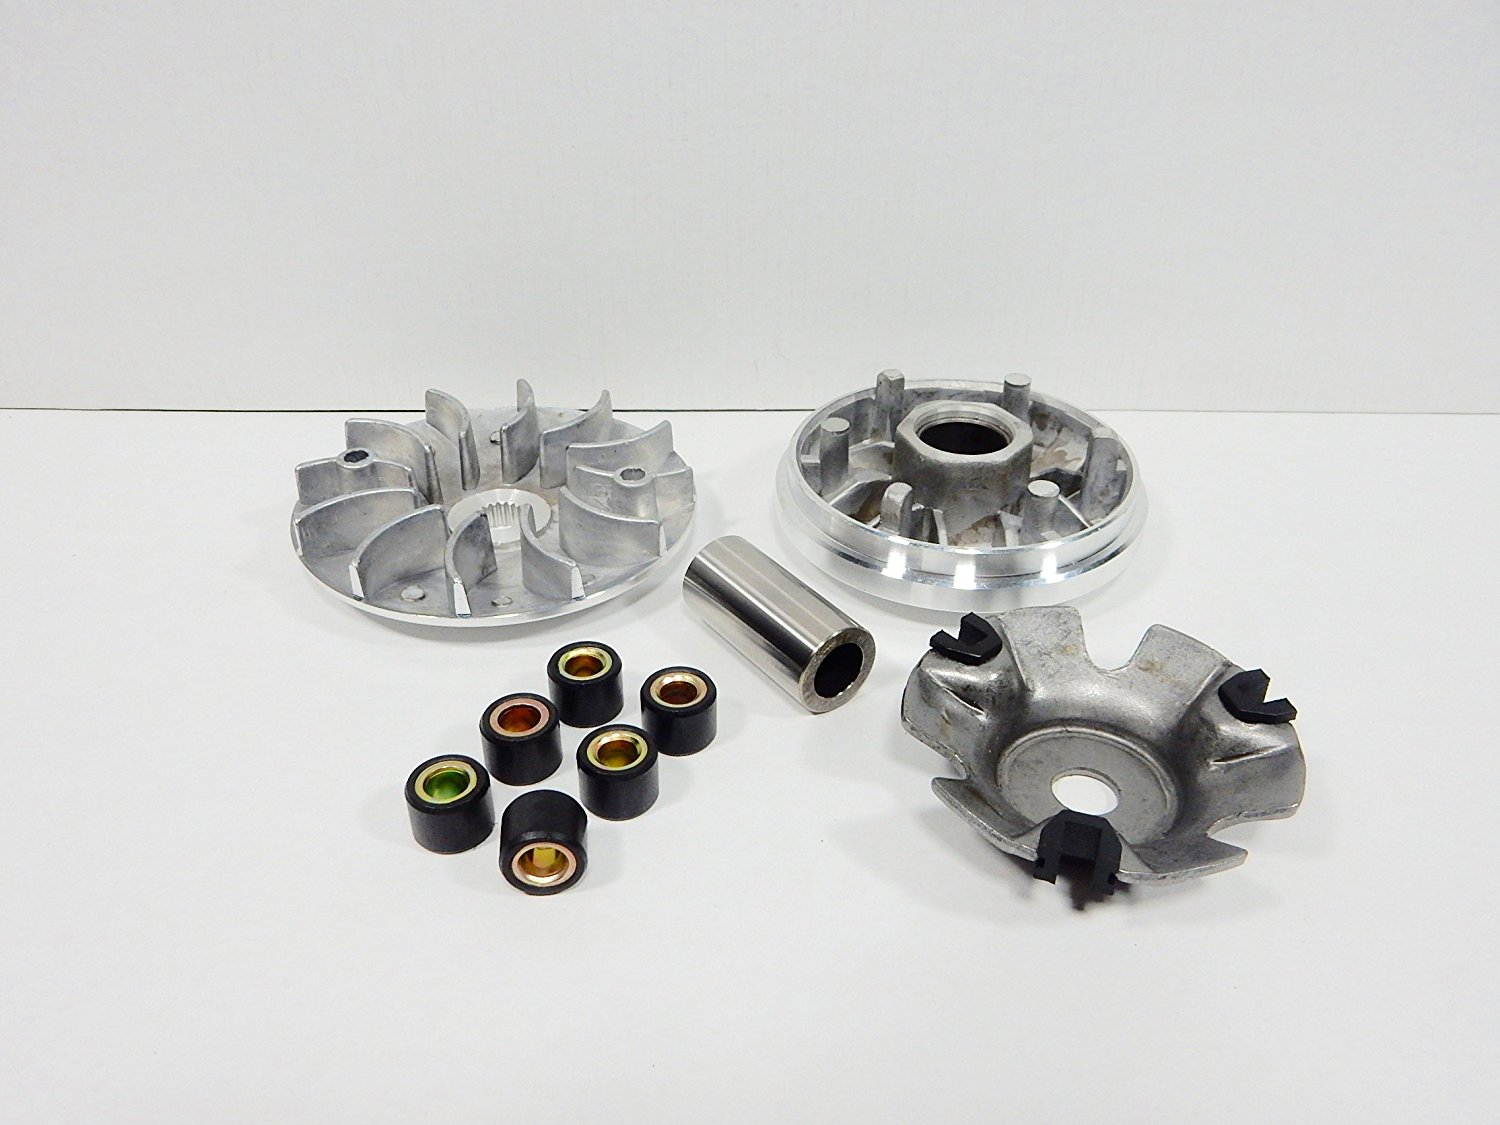 150cc VARIATOR ASSEMBLY FOR SCOOTERS, ATVS, UTVS, WITH 150cc GY6 MOTORS